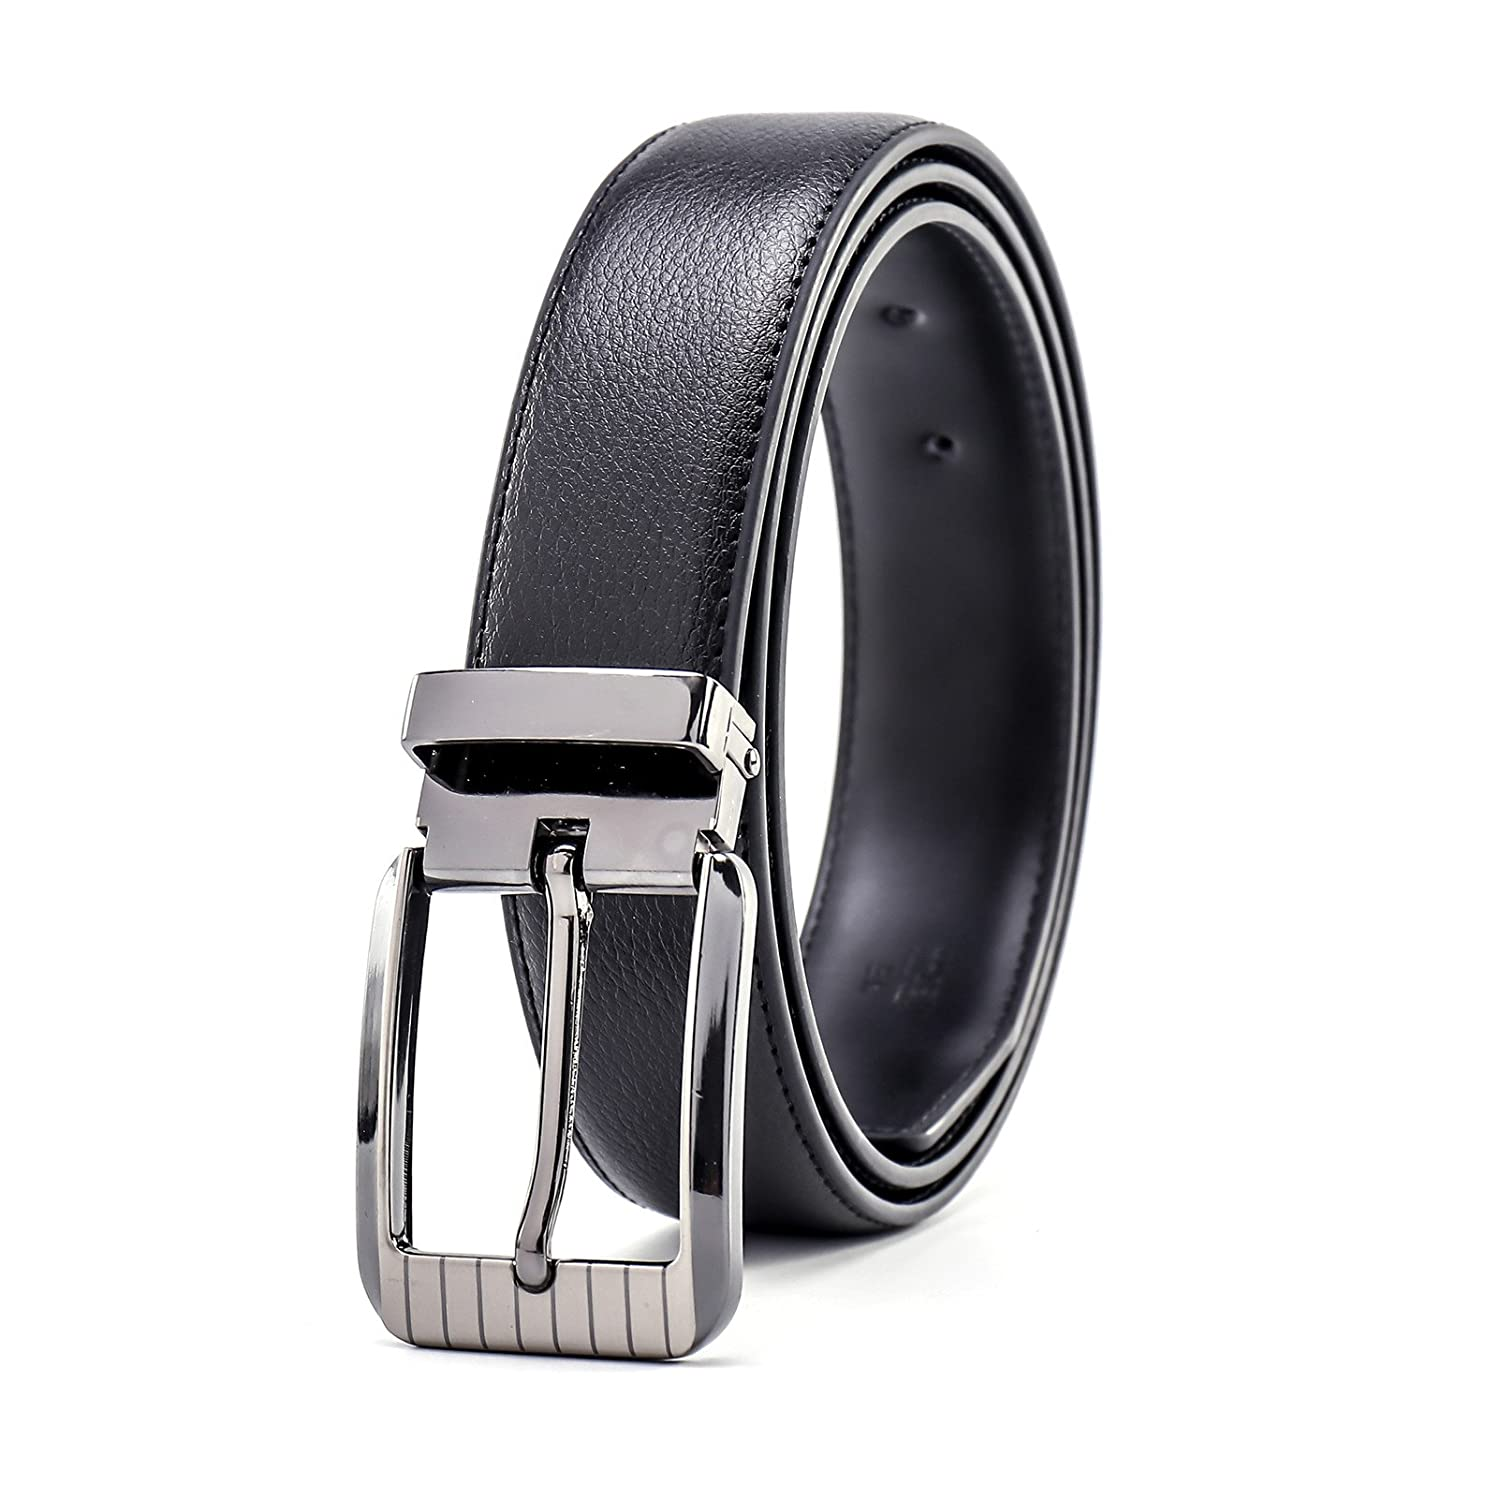 Black Black Black LannyQveen Men's Leather Belts Pin Buckle Belt a1dfff